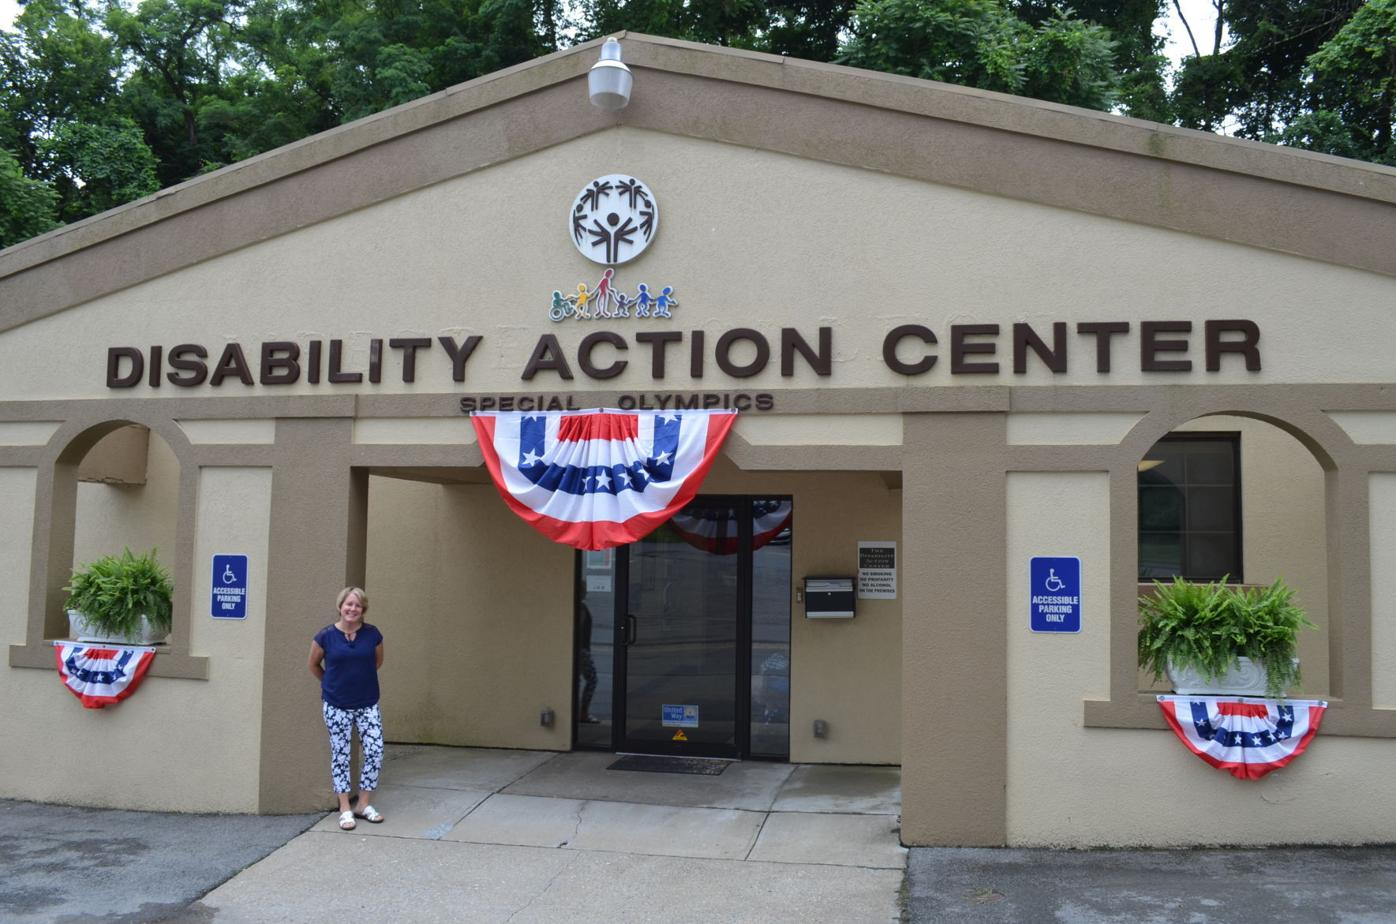 Disability Action Center - July 2018